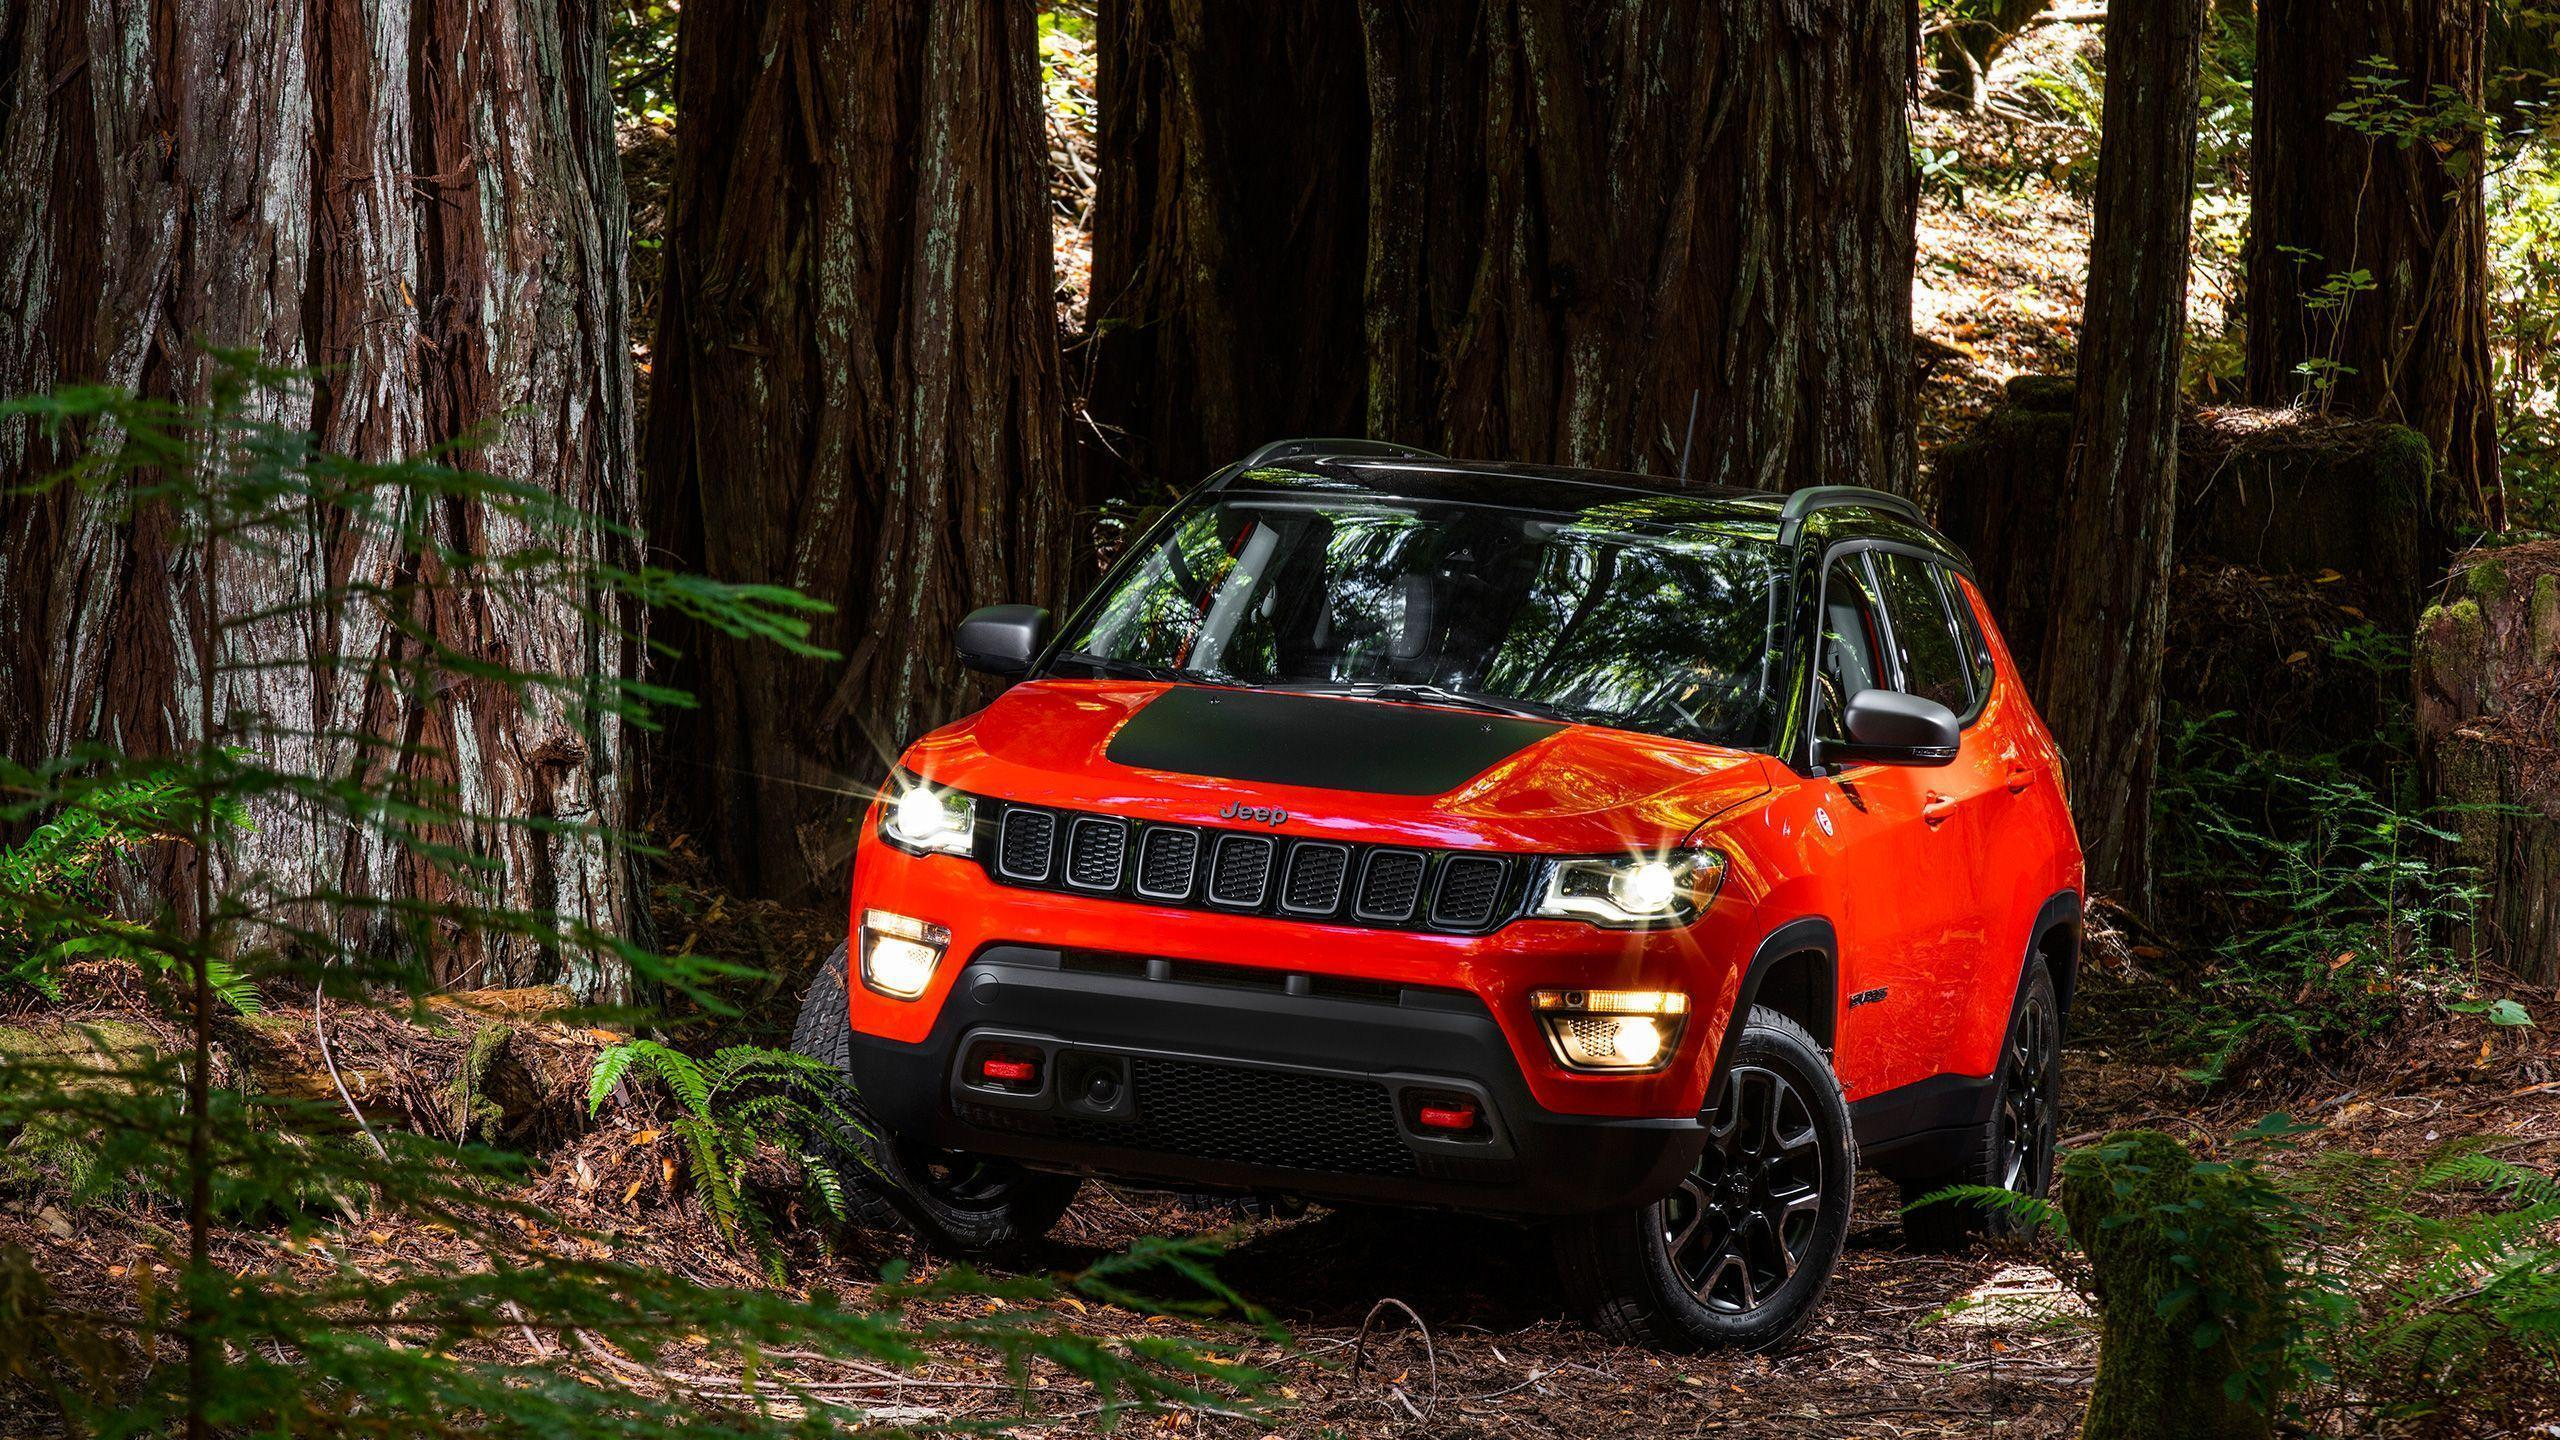 Iphone Jeep Compass Hd Wallpapers 1080p